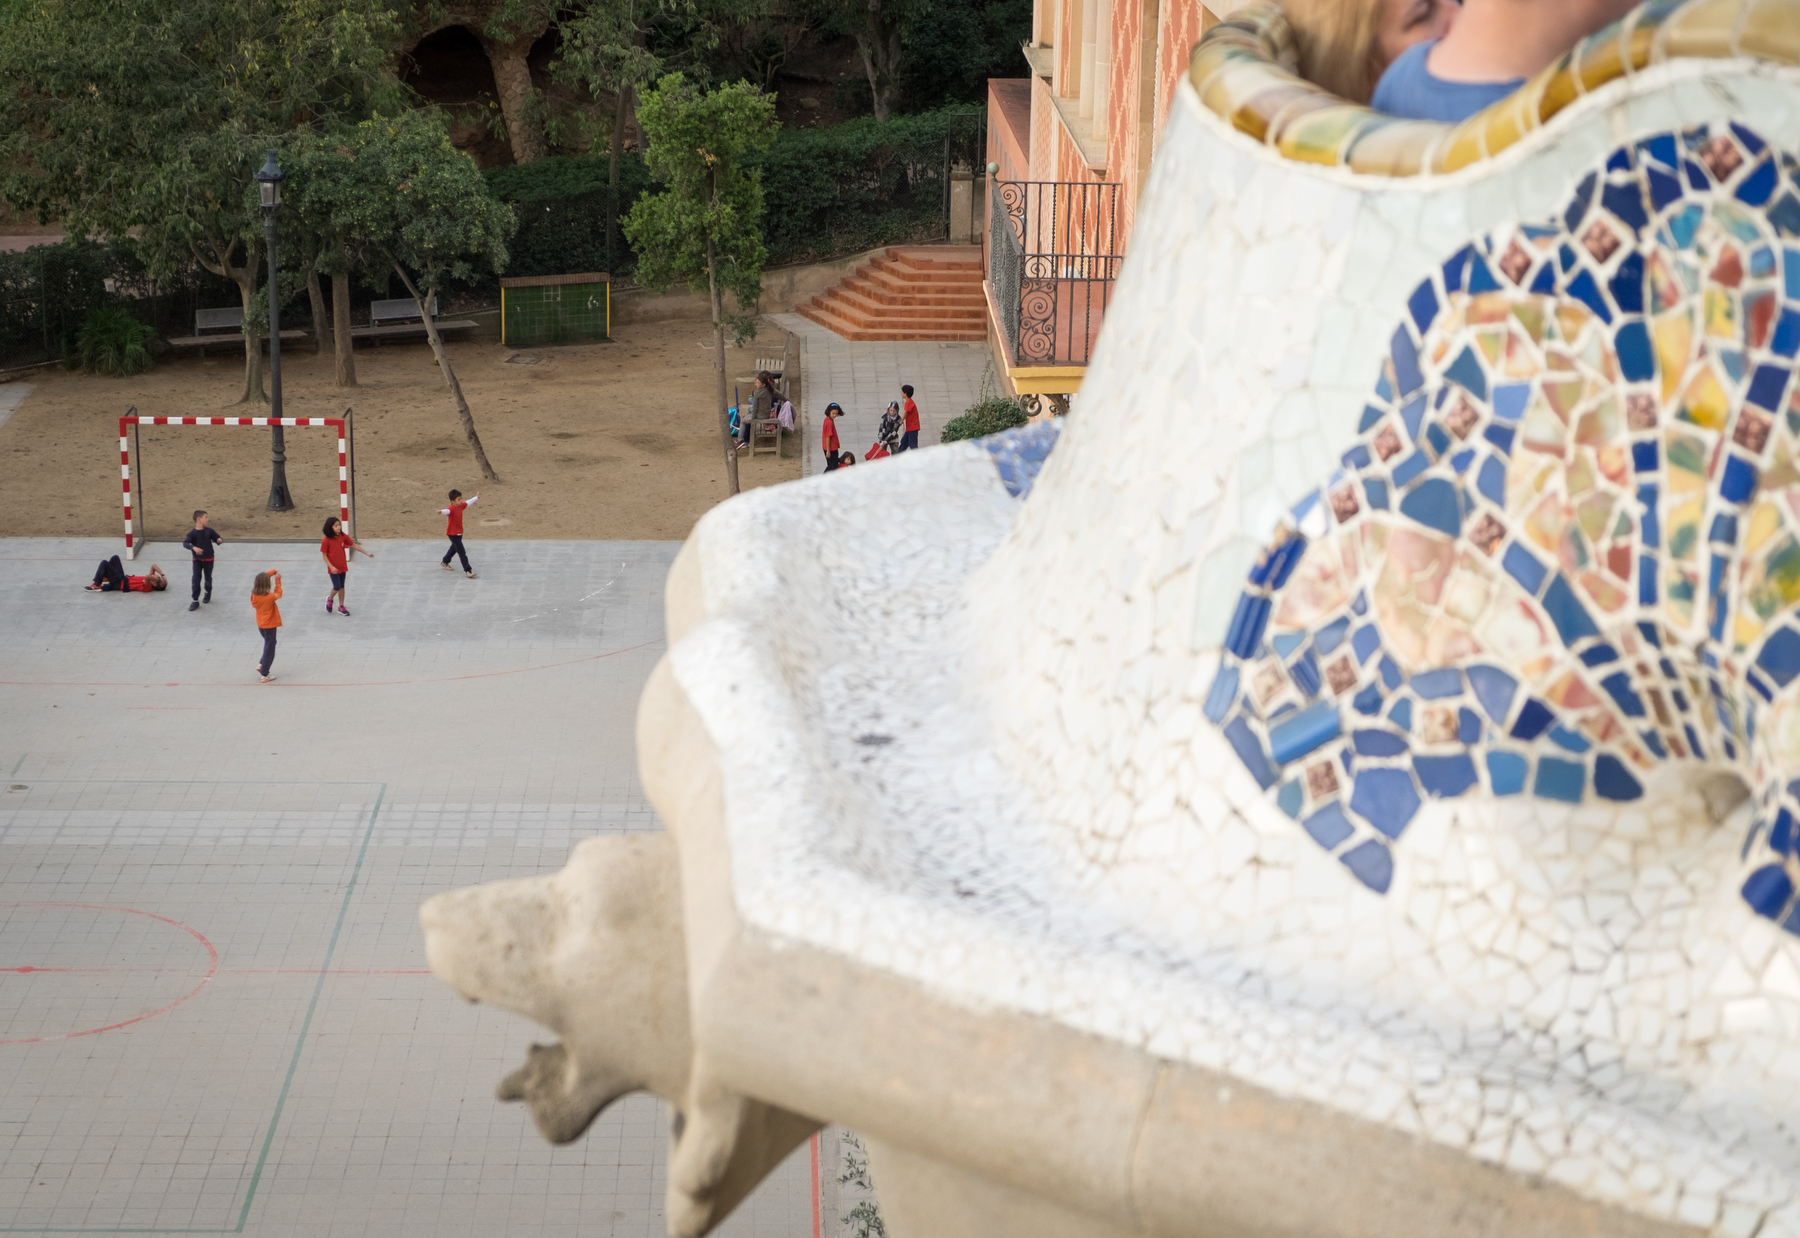 Imagine attending a school located to a place like Park Guell